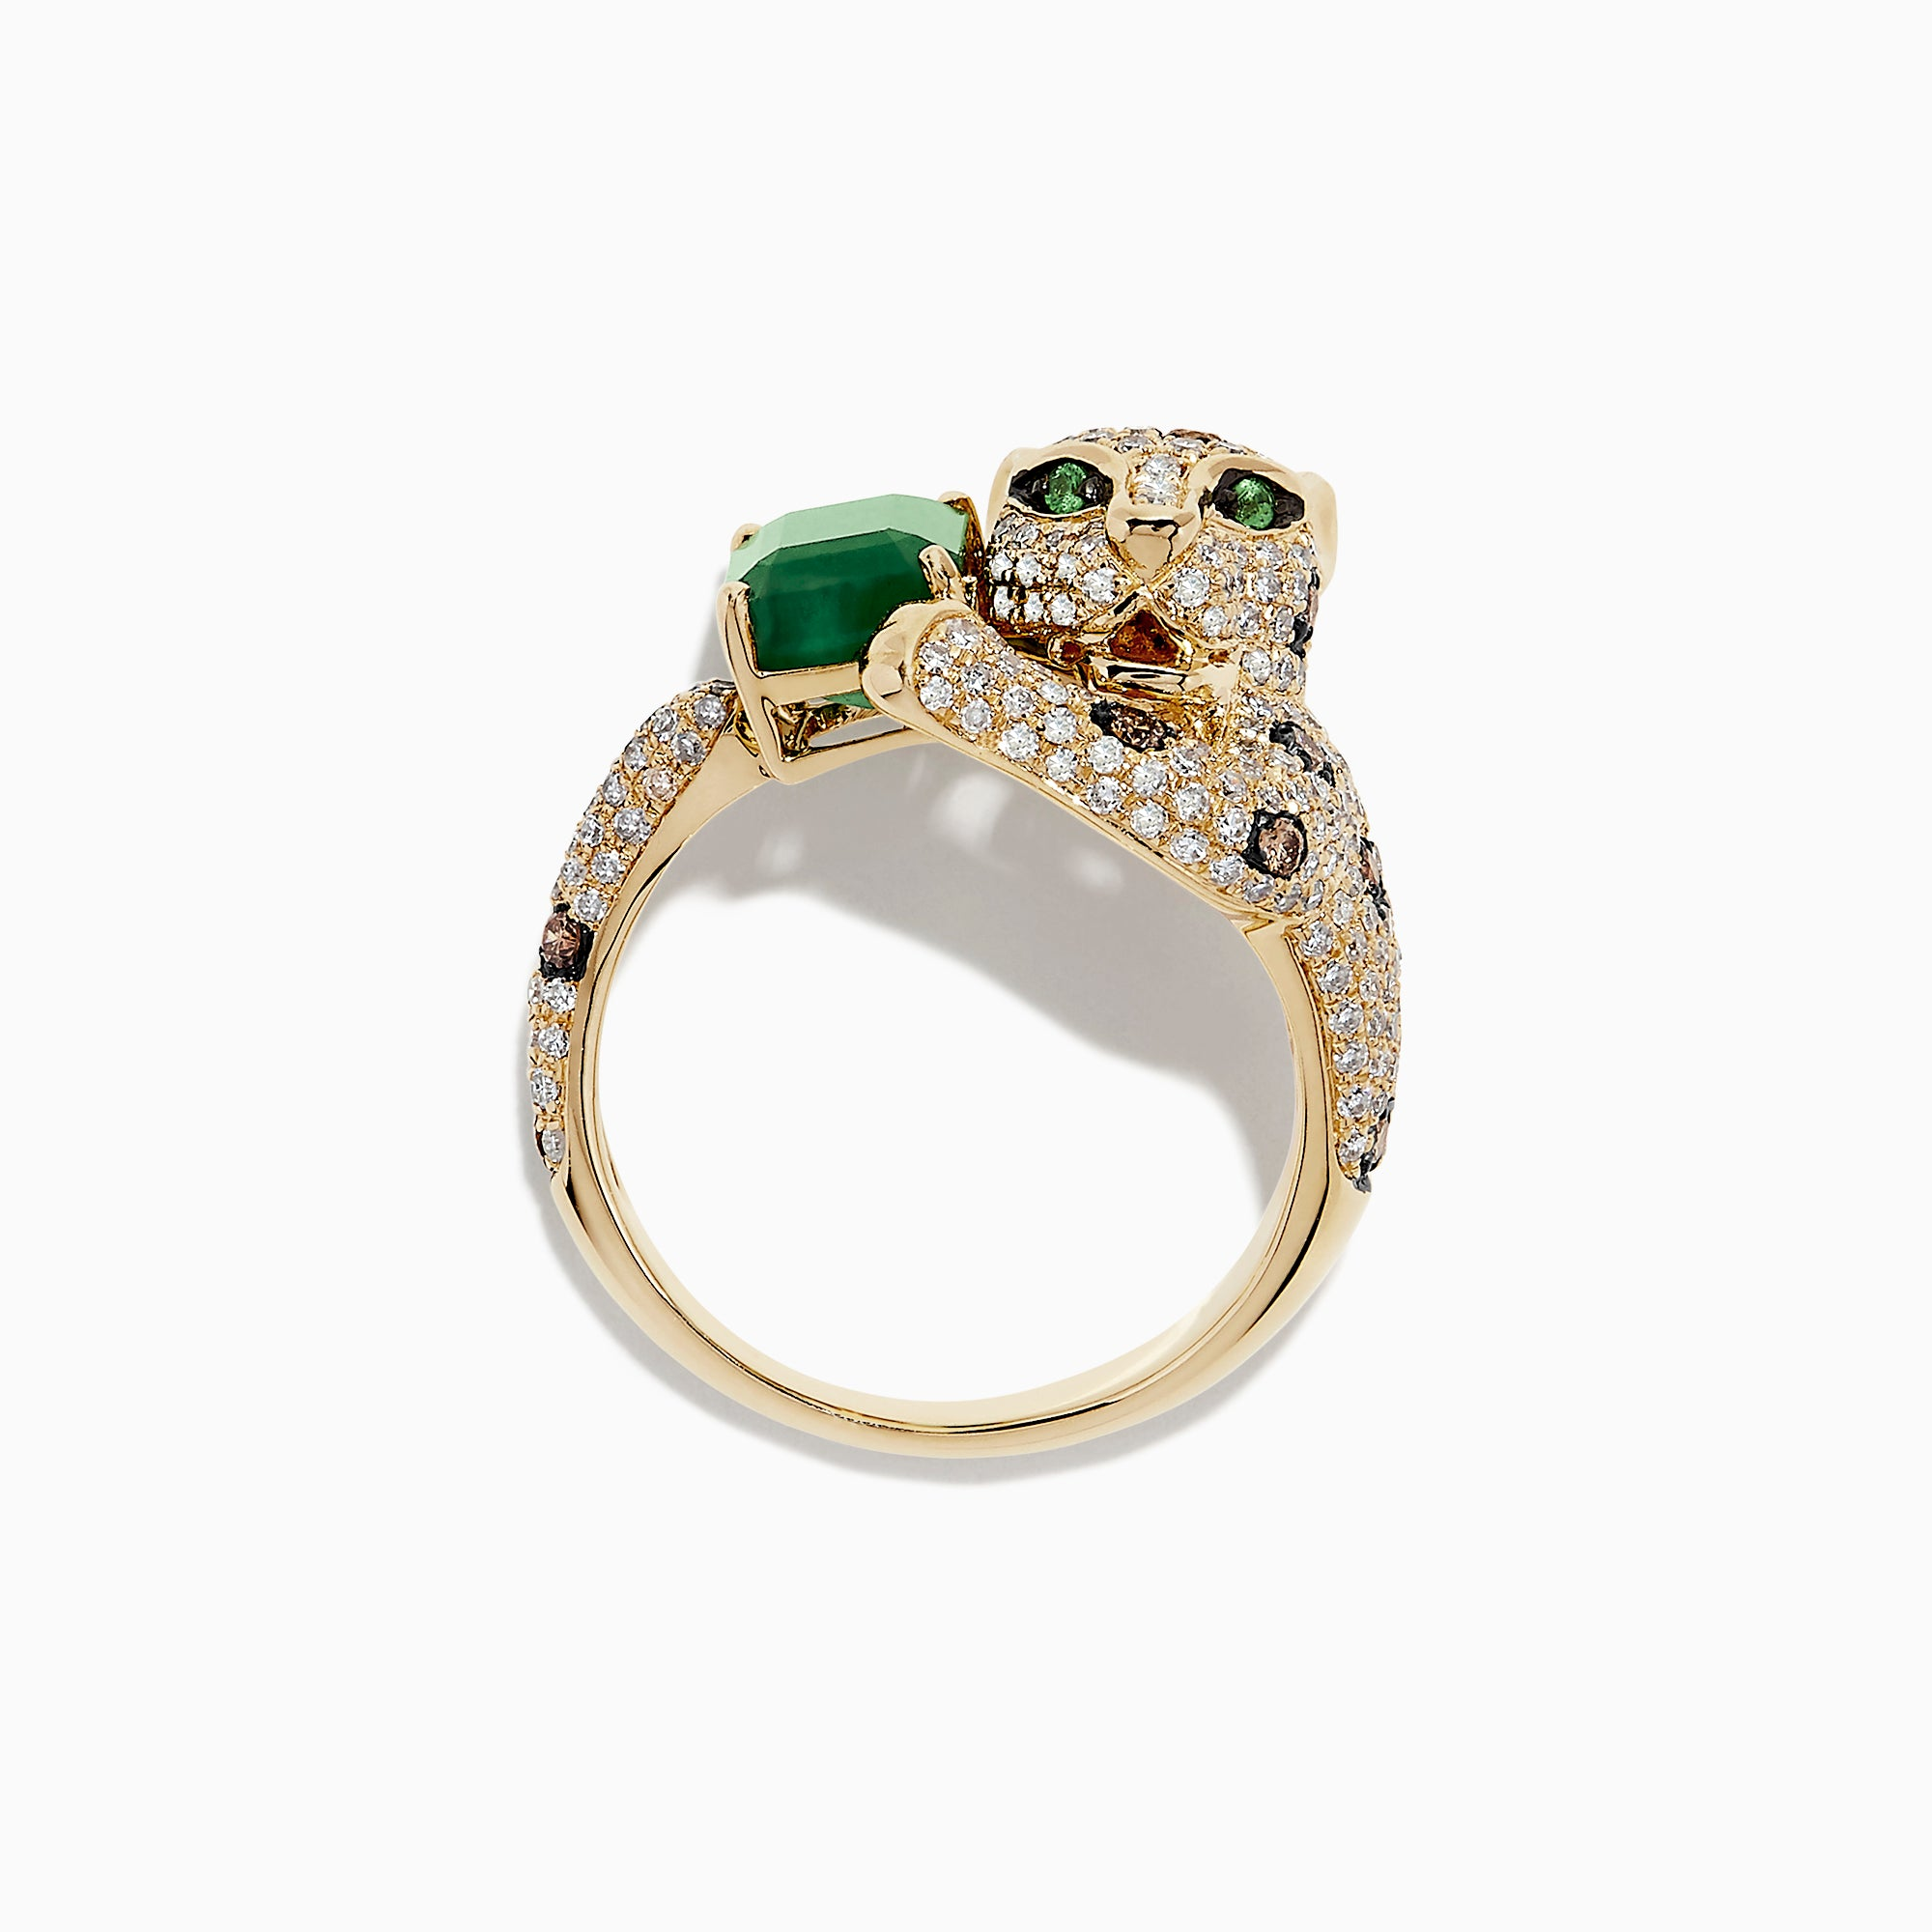 Effy Signature 14K Yellow Gold Emerald and Diamond Ring, 2.55 TCW